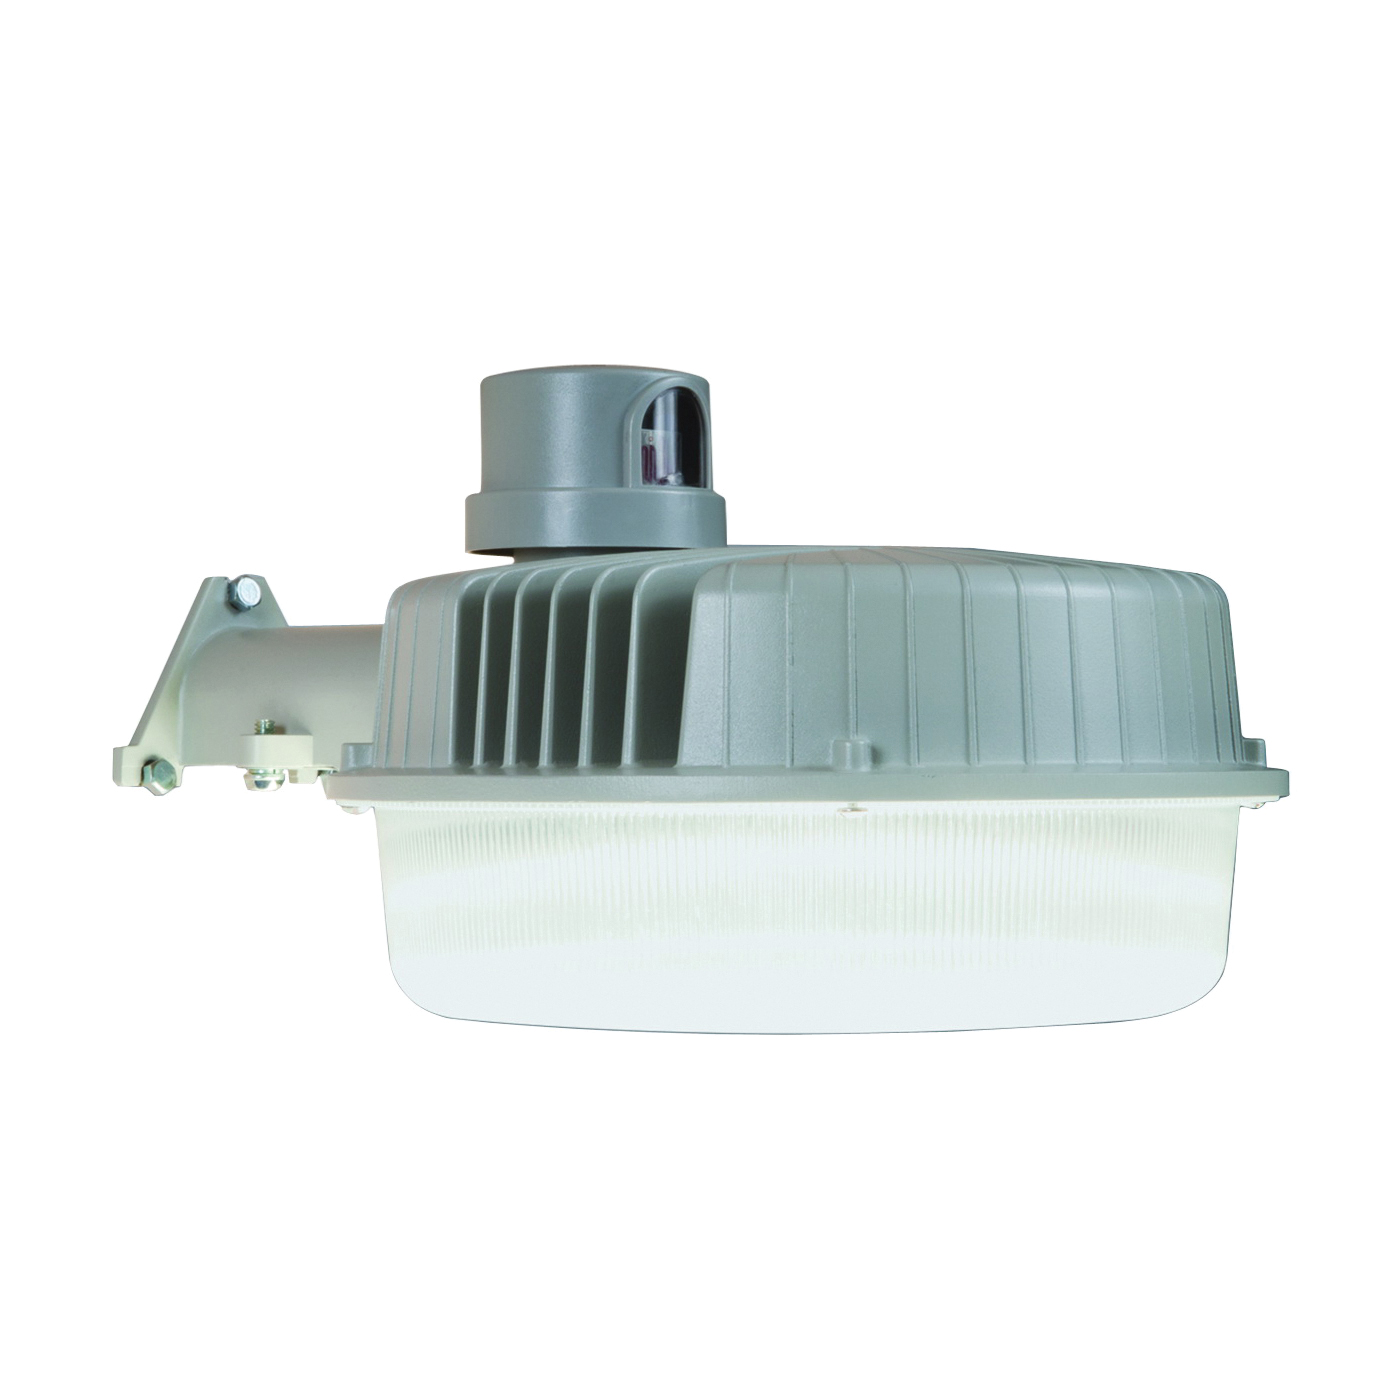 Picture of Eaton Lighting ALL-PRO AL3150LPCGY Area and Wall Light, 120 V, 33.4 W, LED Lamp, 3500 Lumens, Gray Fixture